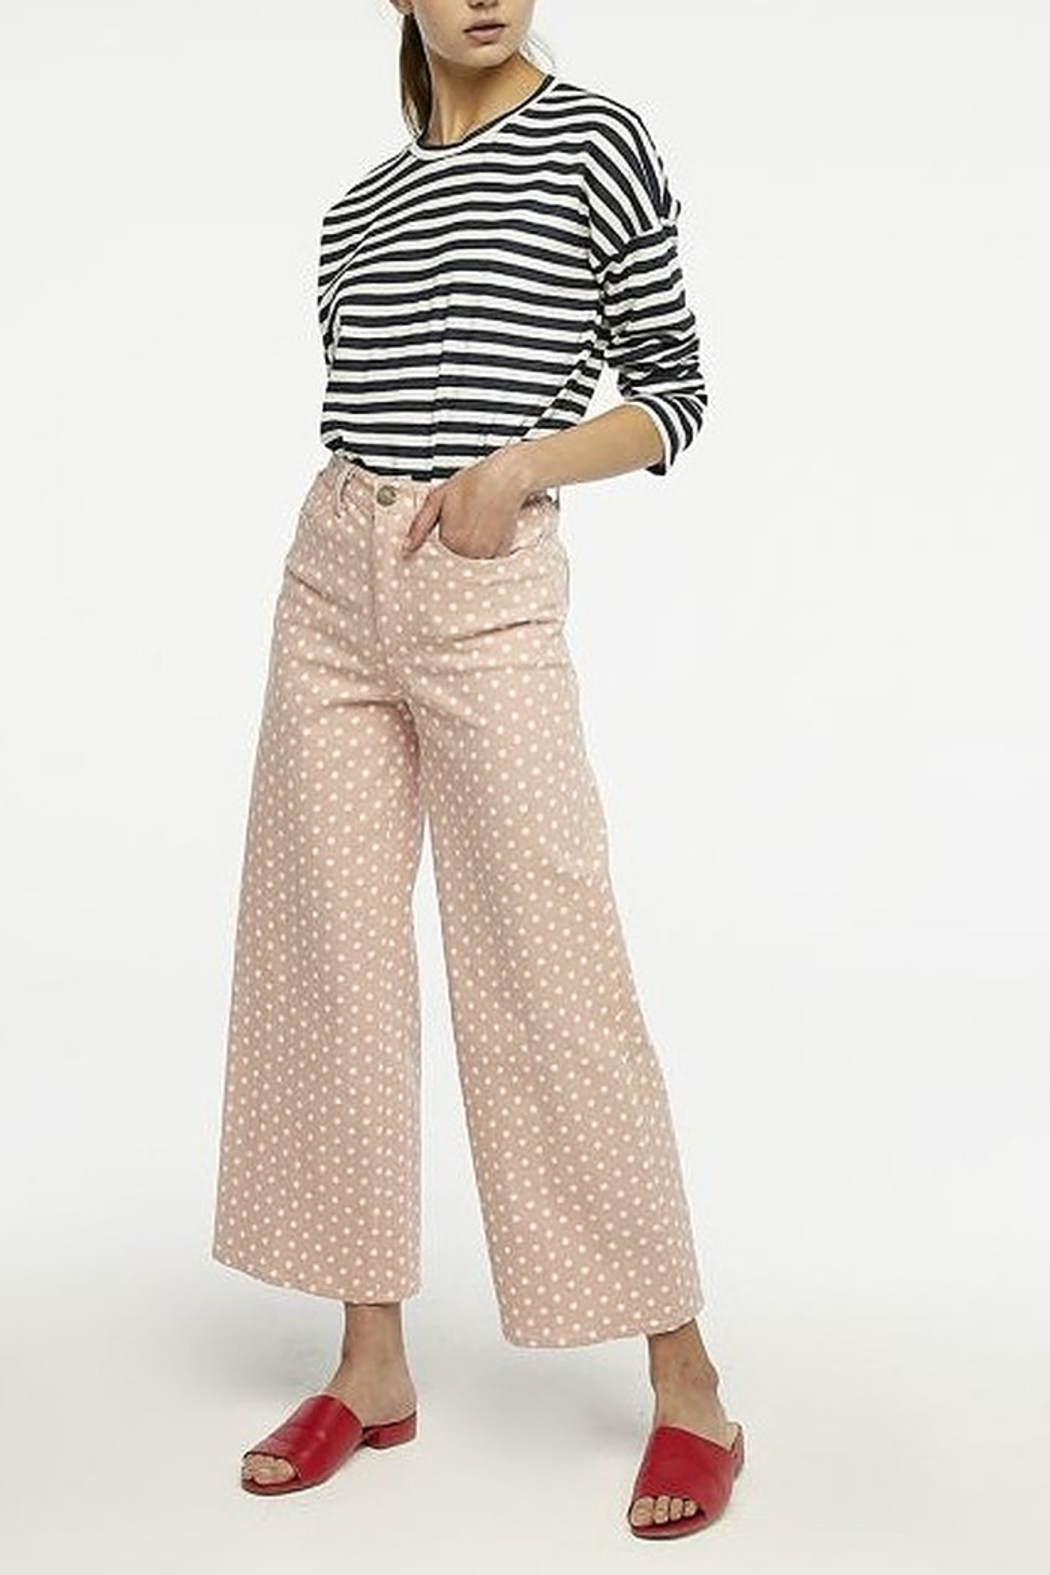 Compania Fantastica Polka Dot Pants - Back Cropped Image